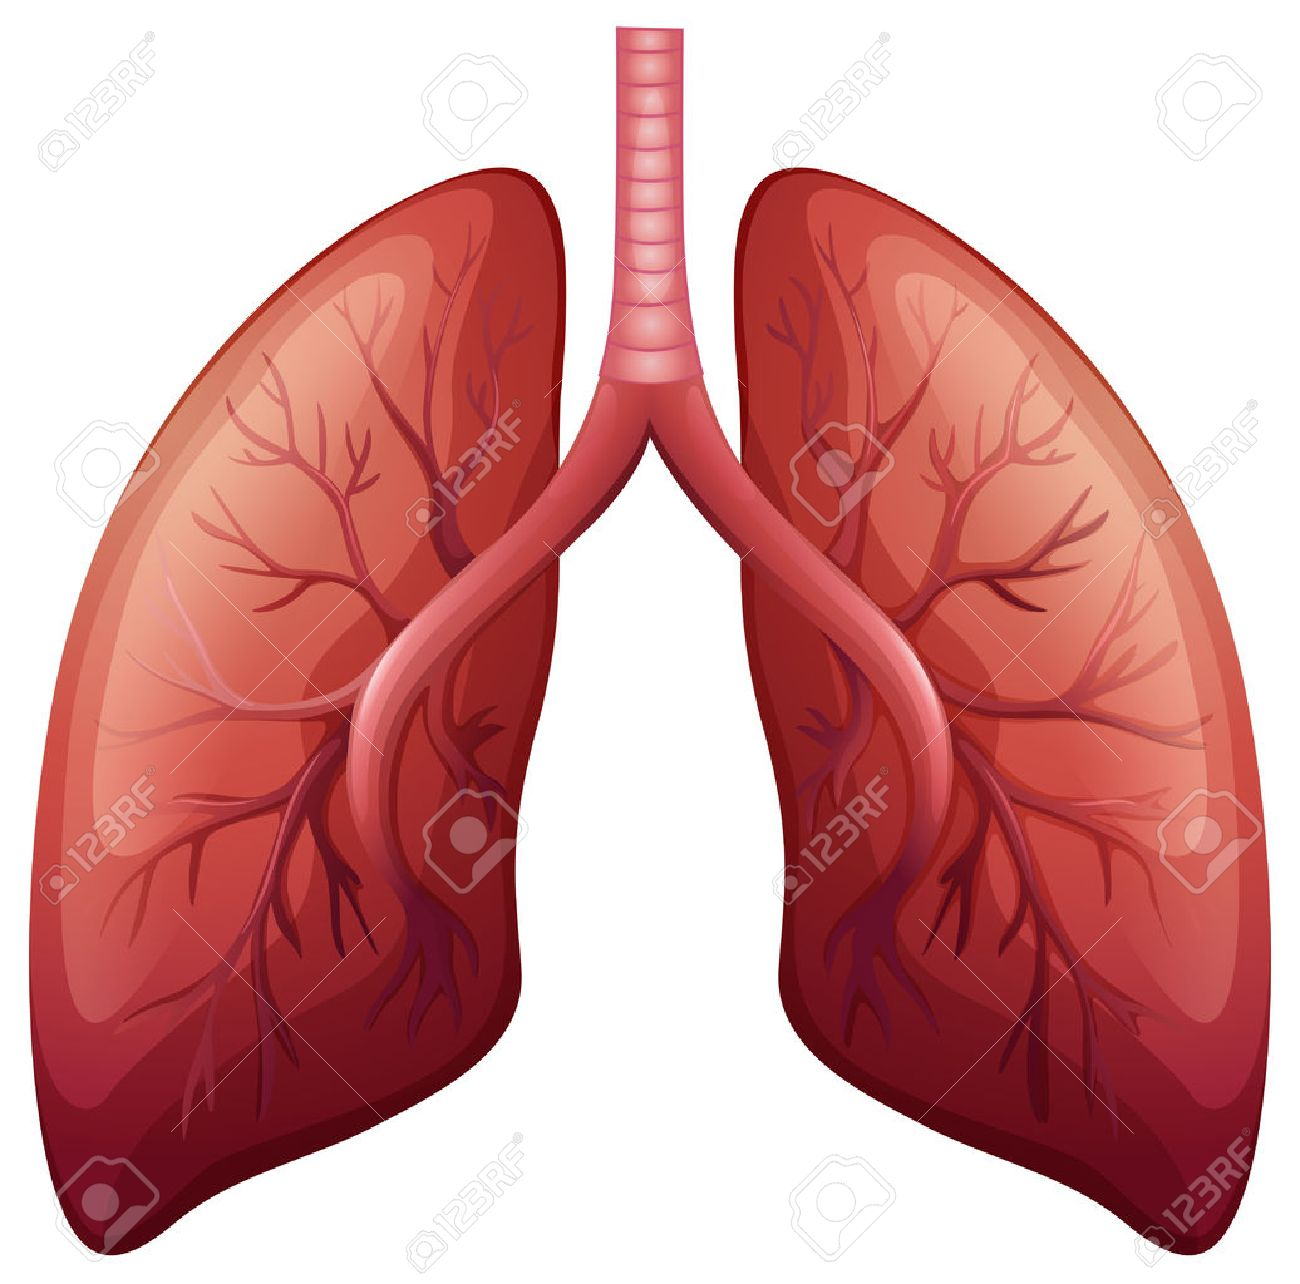 Lungs images stock pictures royalty free lungs photos and stock lung cancer diagram in detail illustration ccuart